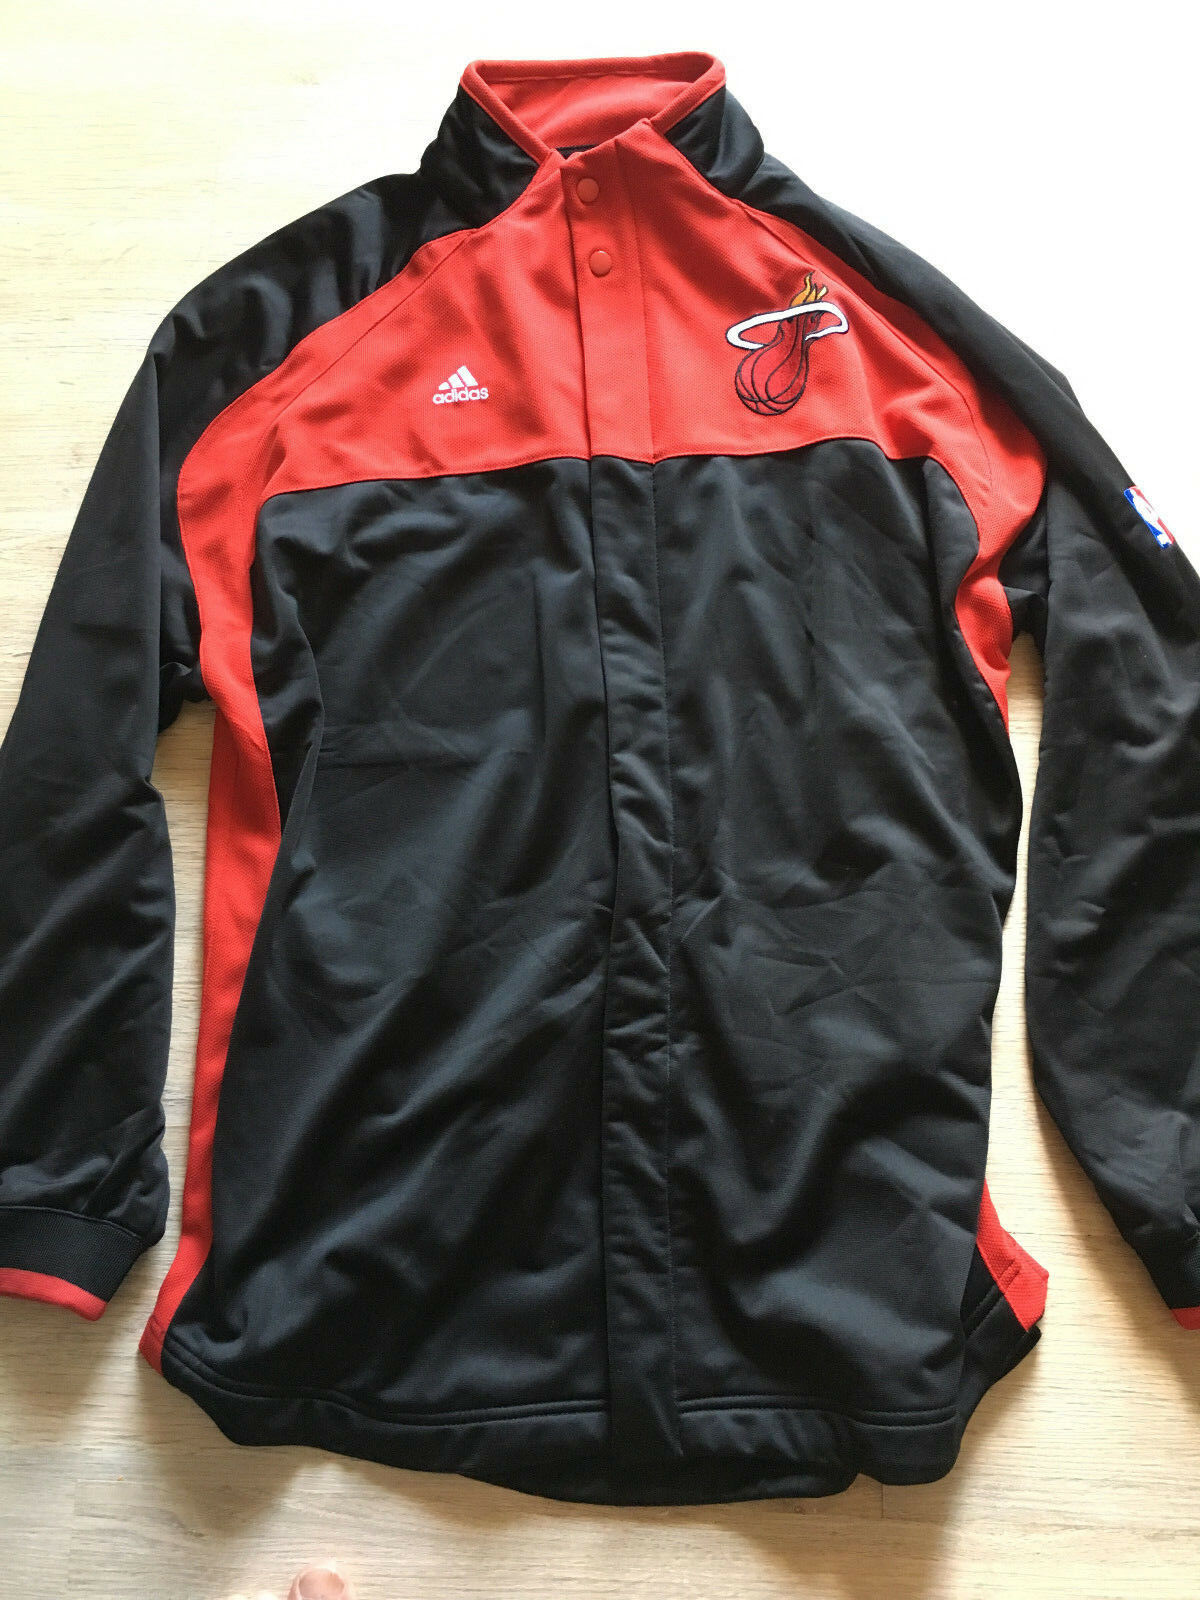 Adidas NBA Miami Heat Wade Trainingsanzug Trainingshose Trainingsjacke wie NEU L